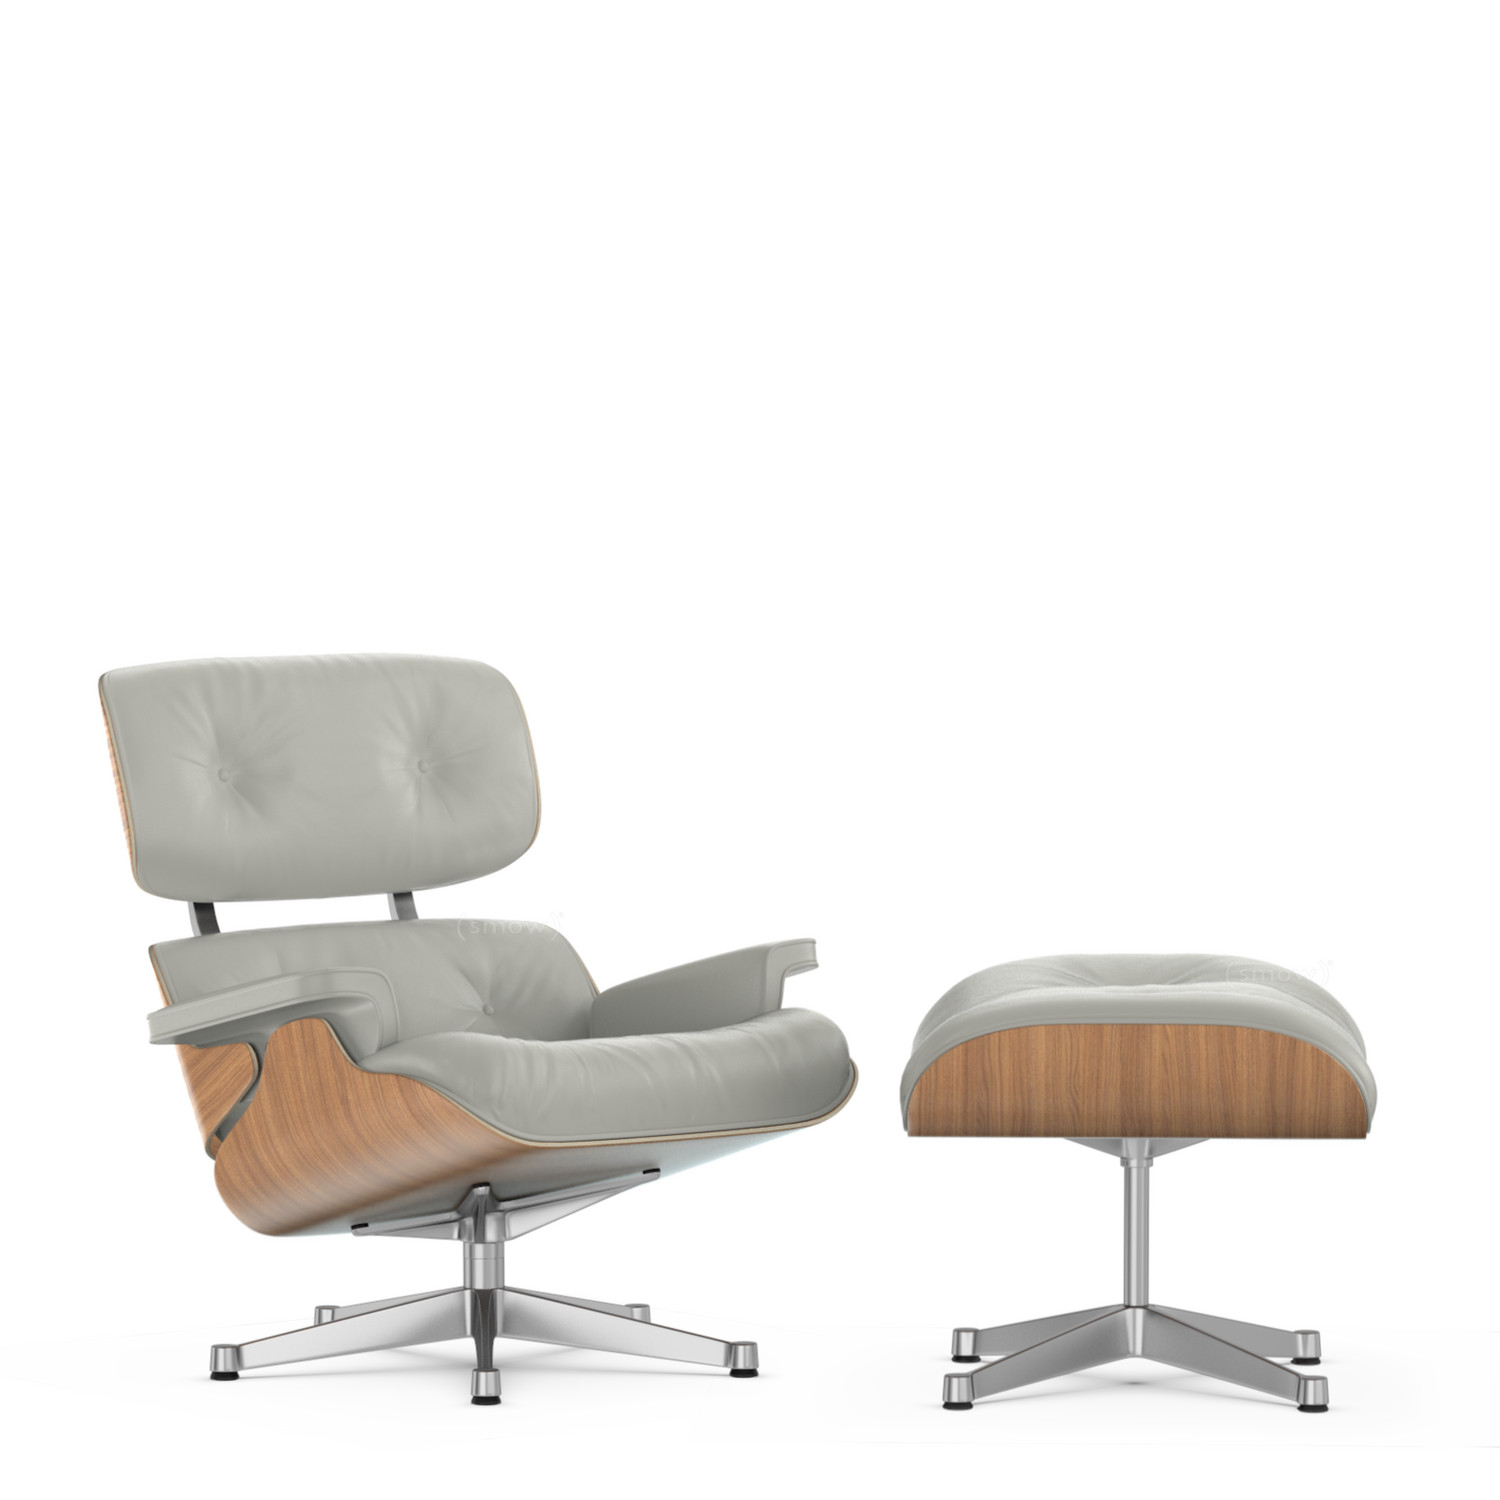 Cool Vitra Lounge Chair Ottoman Beauty Versions Nussbaum Weiss Pigmentiert Ton 84 Cm Originalhohe 1956 Aluminium Poliert Creativecarmelina Interior Chair Design Creativecarmelinacom